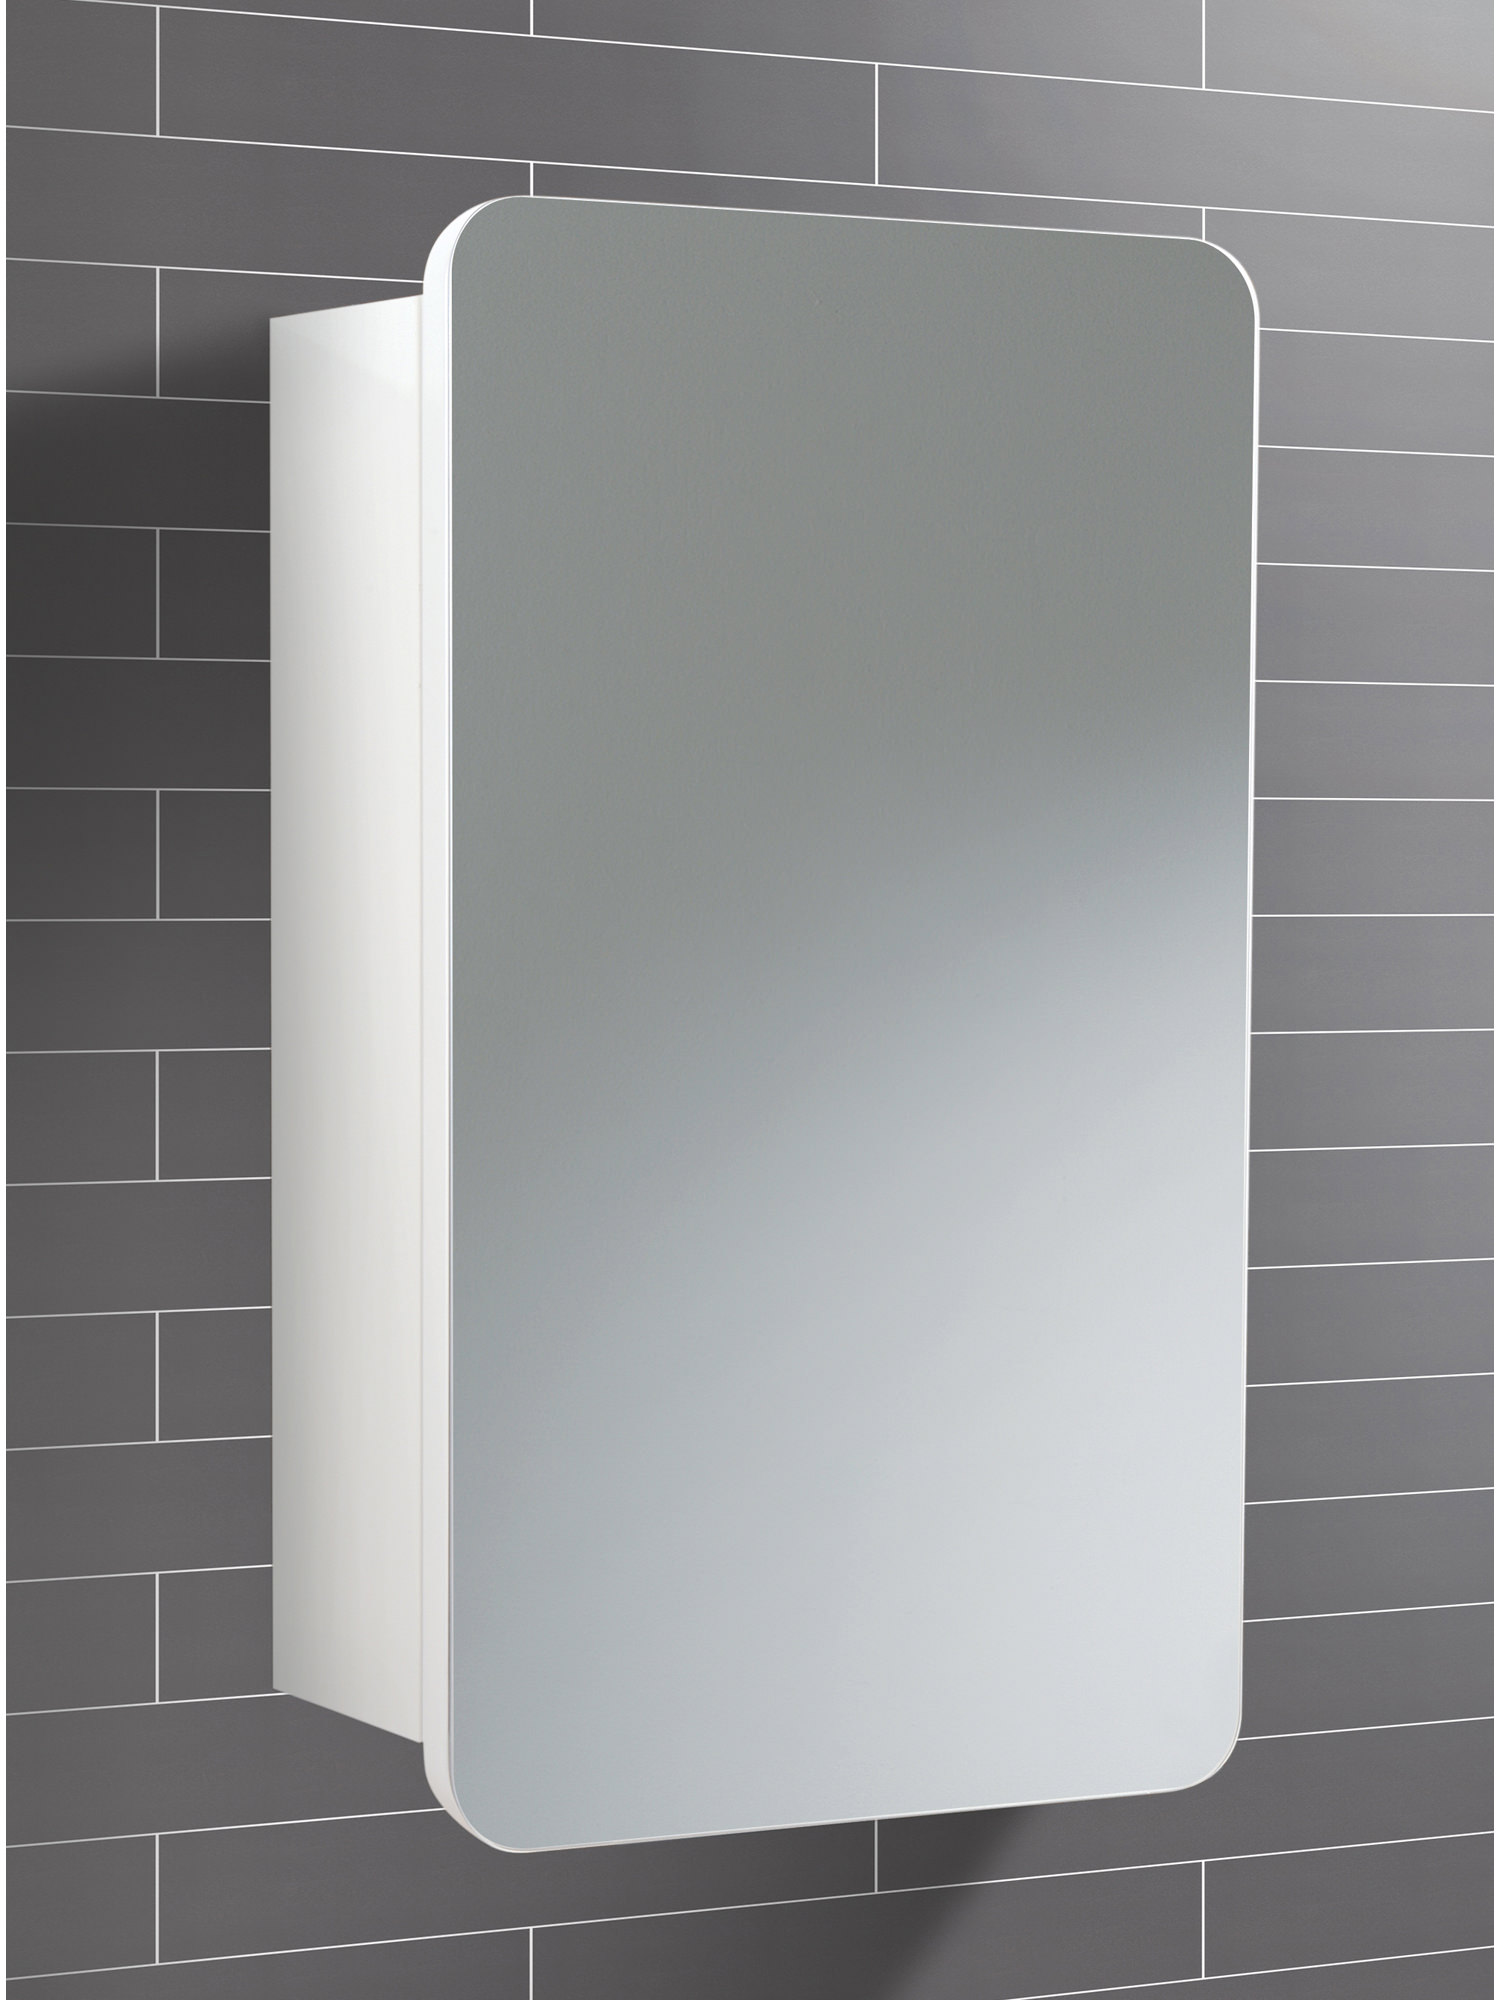 Hib Montana Single Door Bathroom Mirrored Cabinet 350 X 570mm 9101100